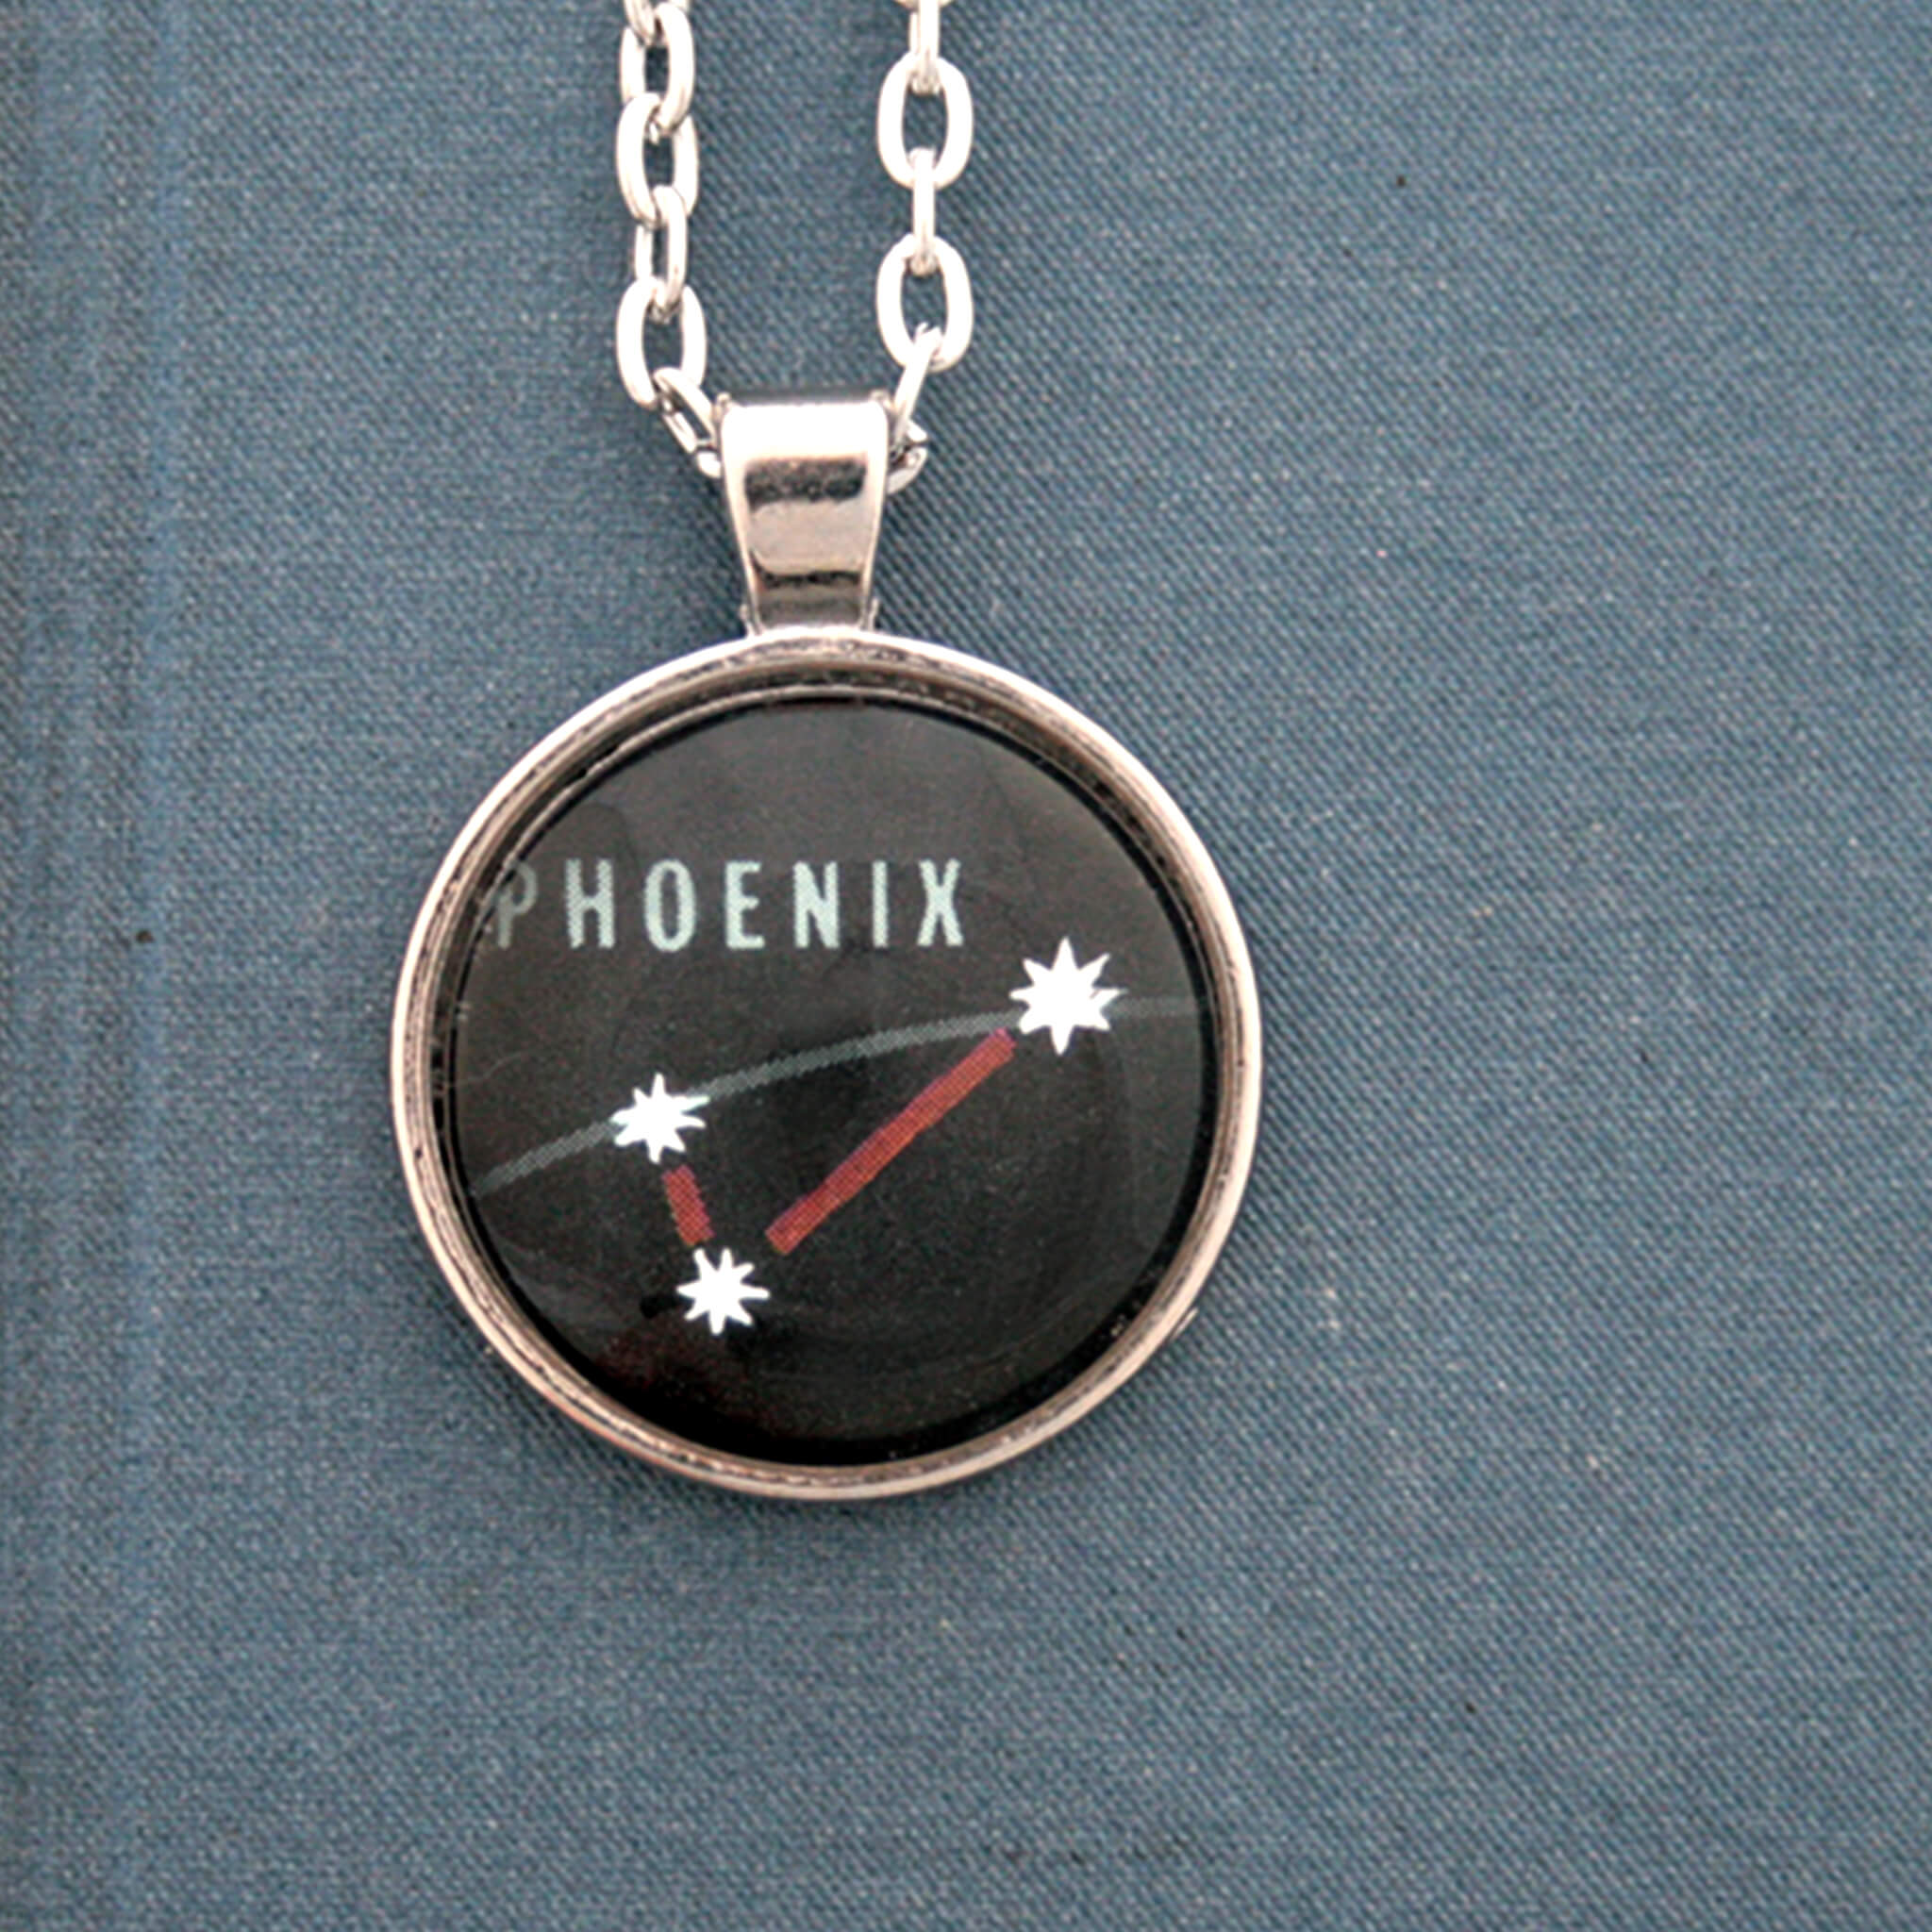 Silver tone pendant necklace with Phoenix constellation